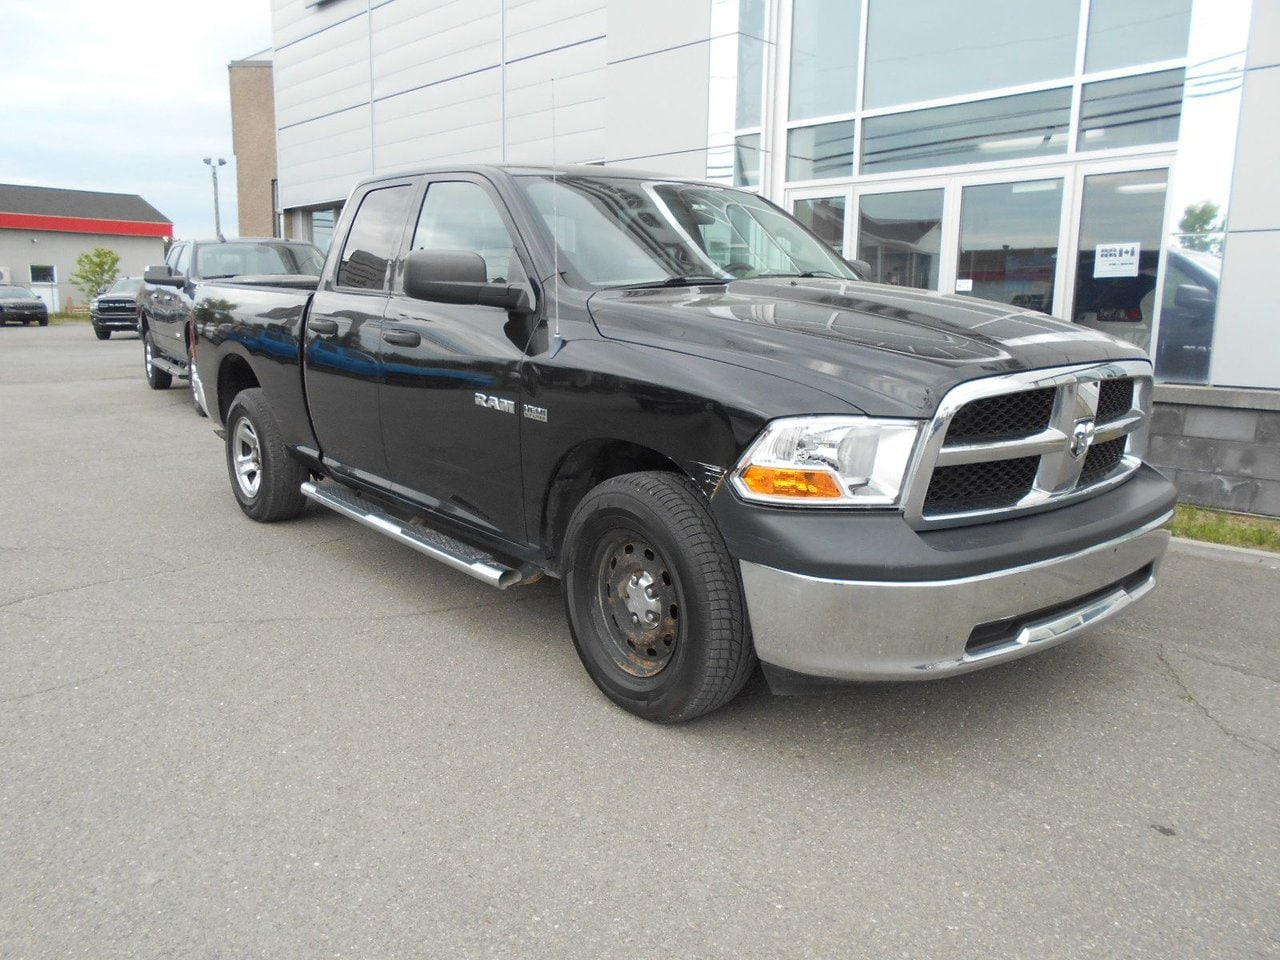 2010 Dodge Ram 1500  SXT Quad Cab 4x4 Pickup - Double Cab